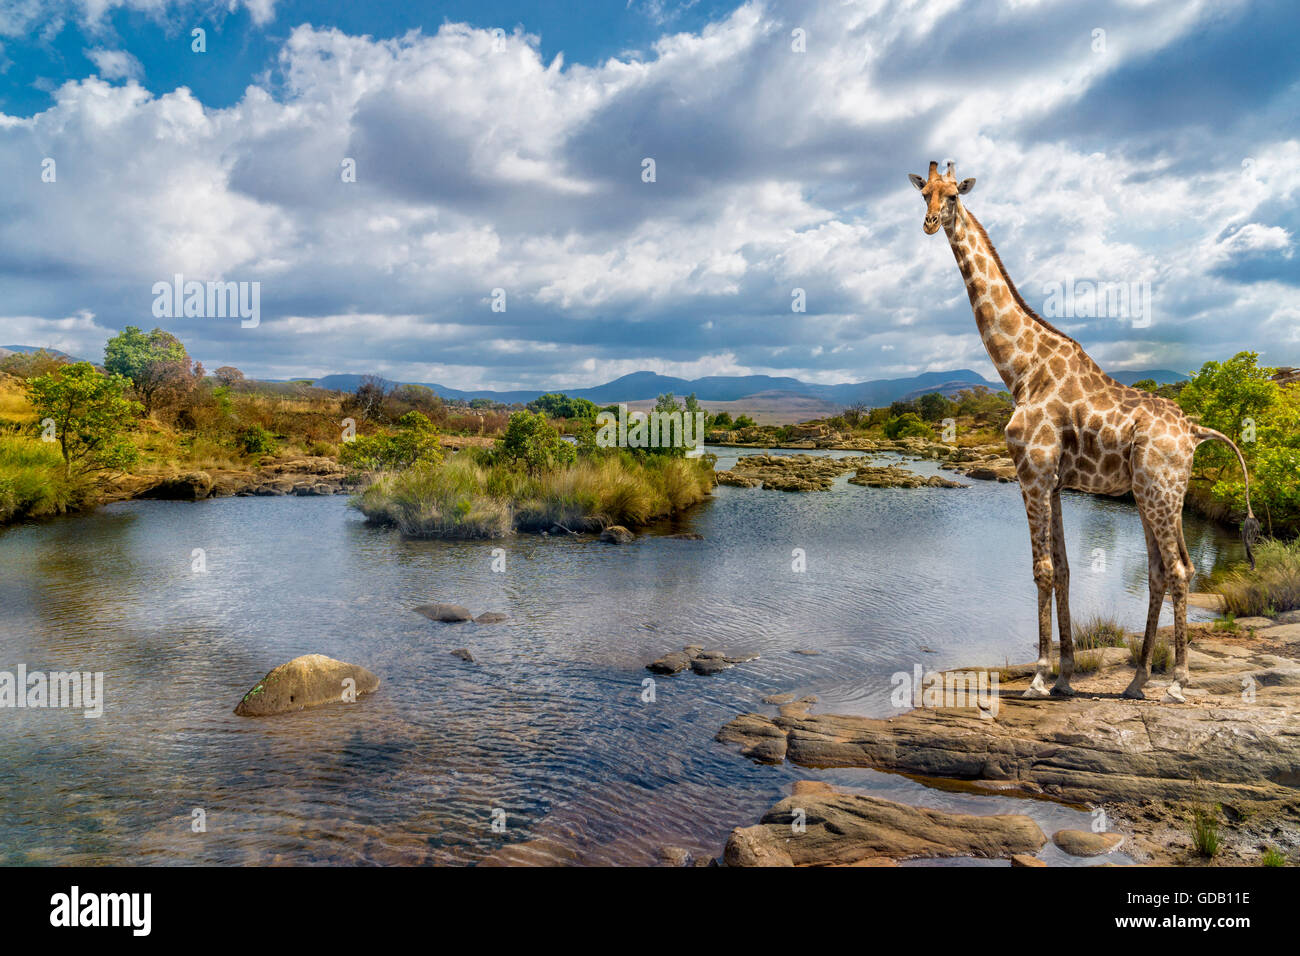 Shot pittoresque d'une girafe, debout sur la rive du fleuve. Photo Stock